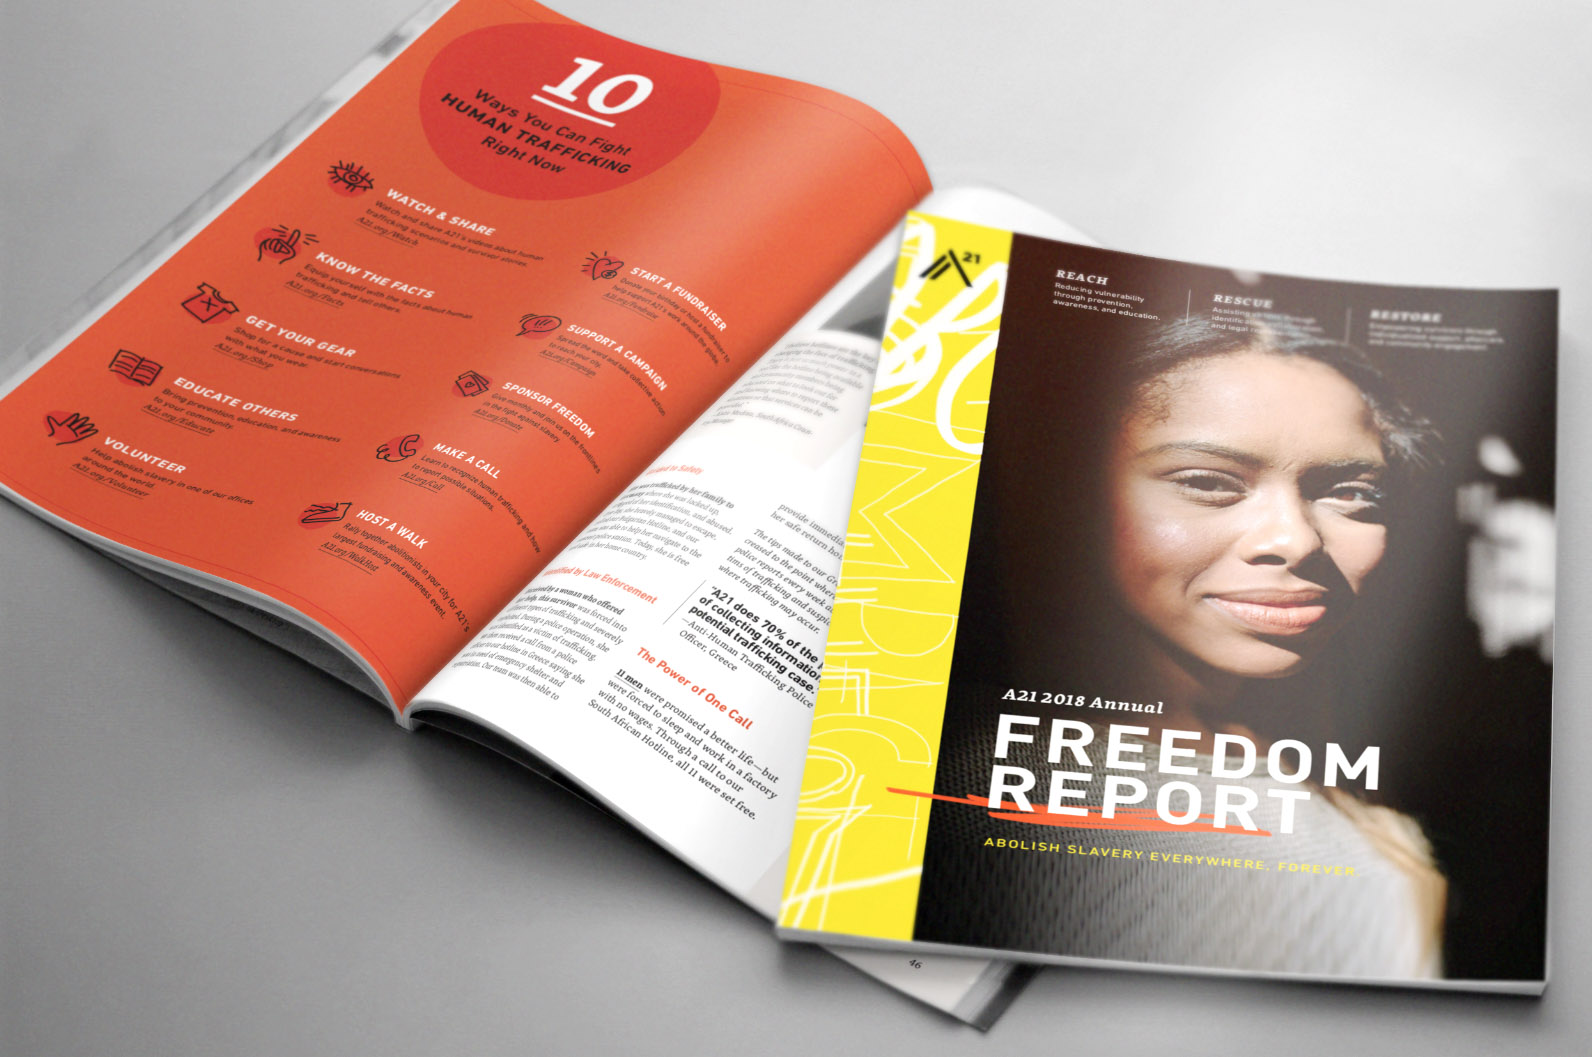 Freedom Report 2018: Showing front cover + 2 open pages: 10 ways you can fight human trafficking, the power of one hotline call.